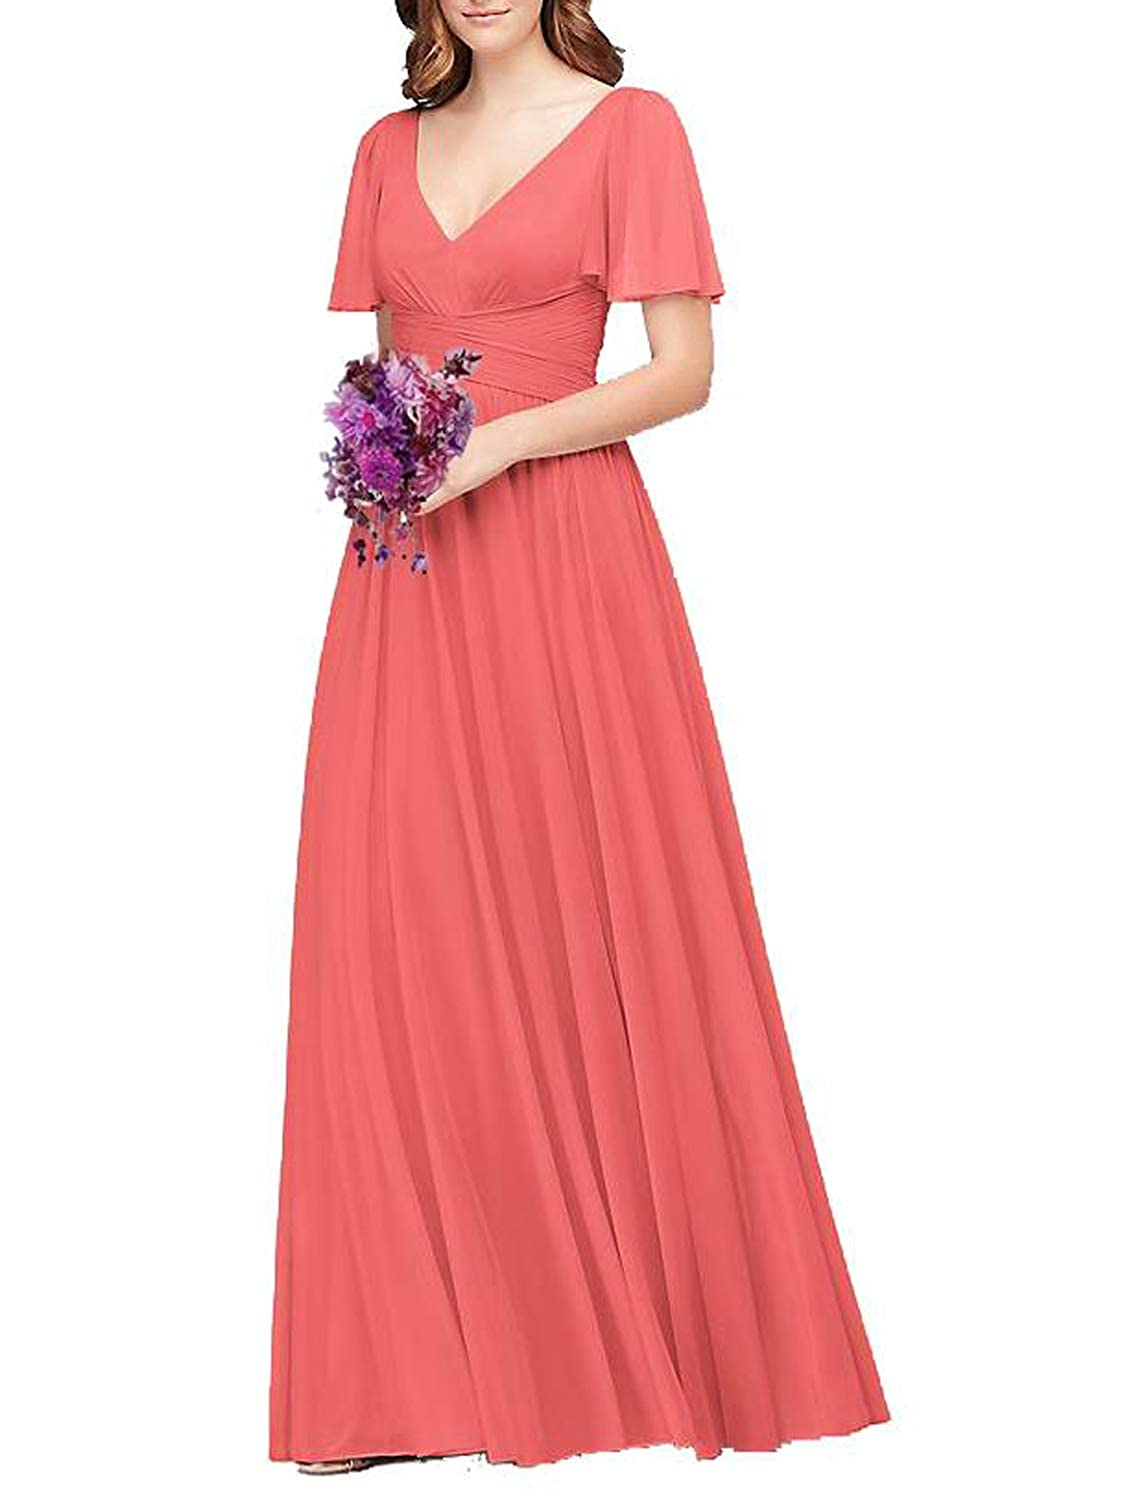 Fusion Coral Flutter Sleeve Long Ball Prom Gown for Women Formal Bridesmaid Dress Maxi Skirt